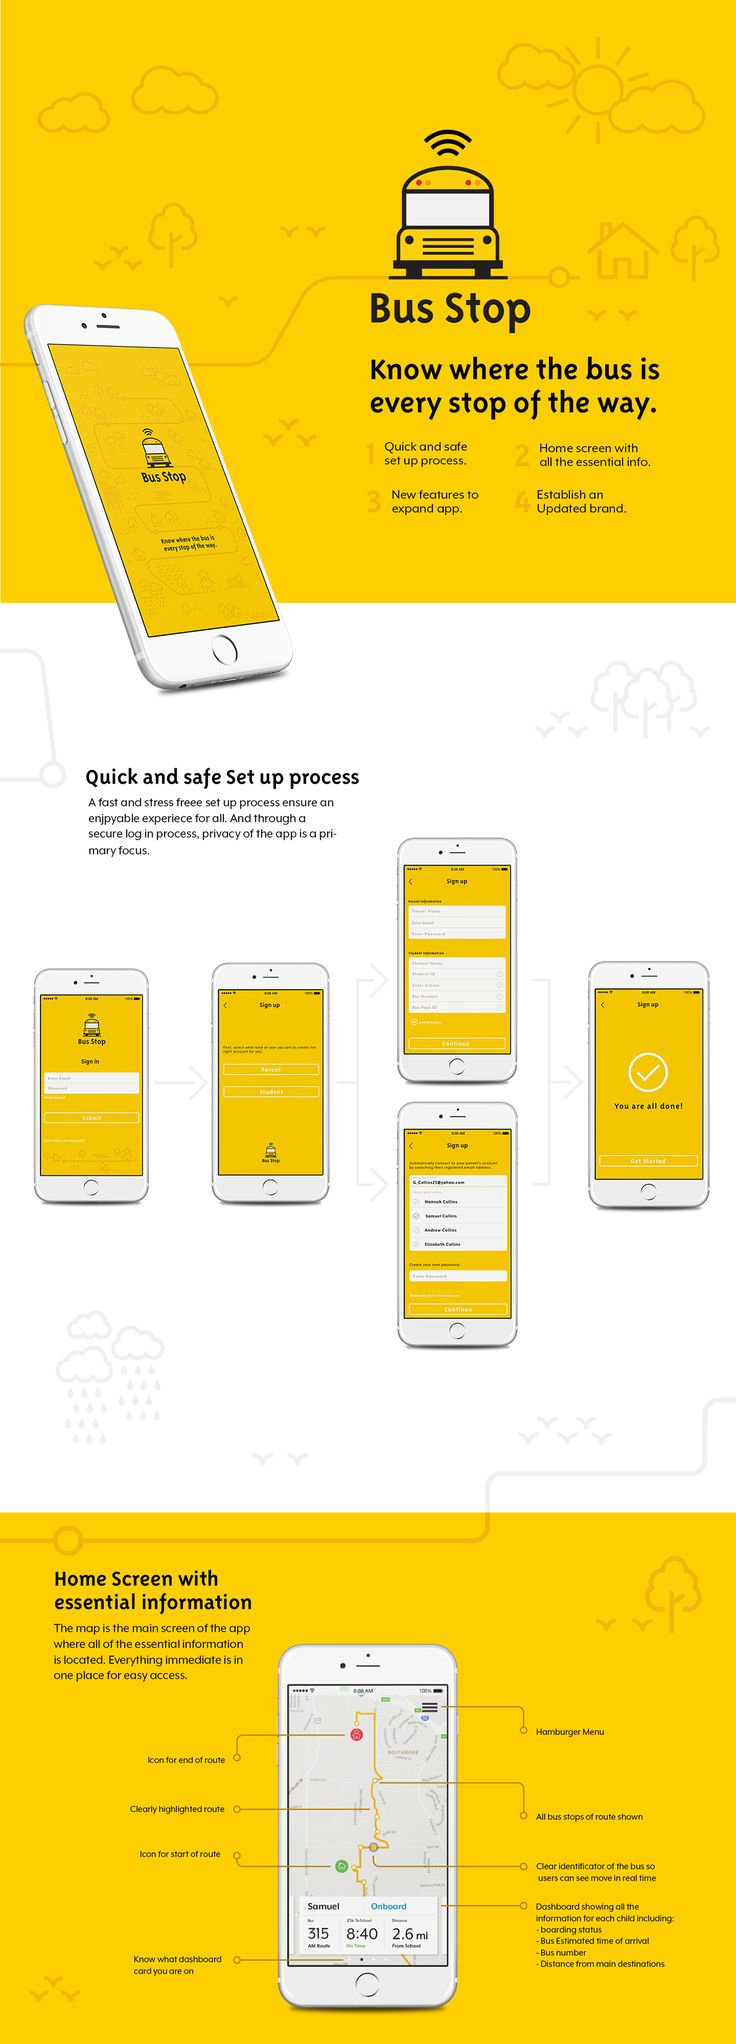 Bus Stop: A redesign of the Here Comes the Bus app on Behance